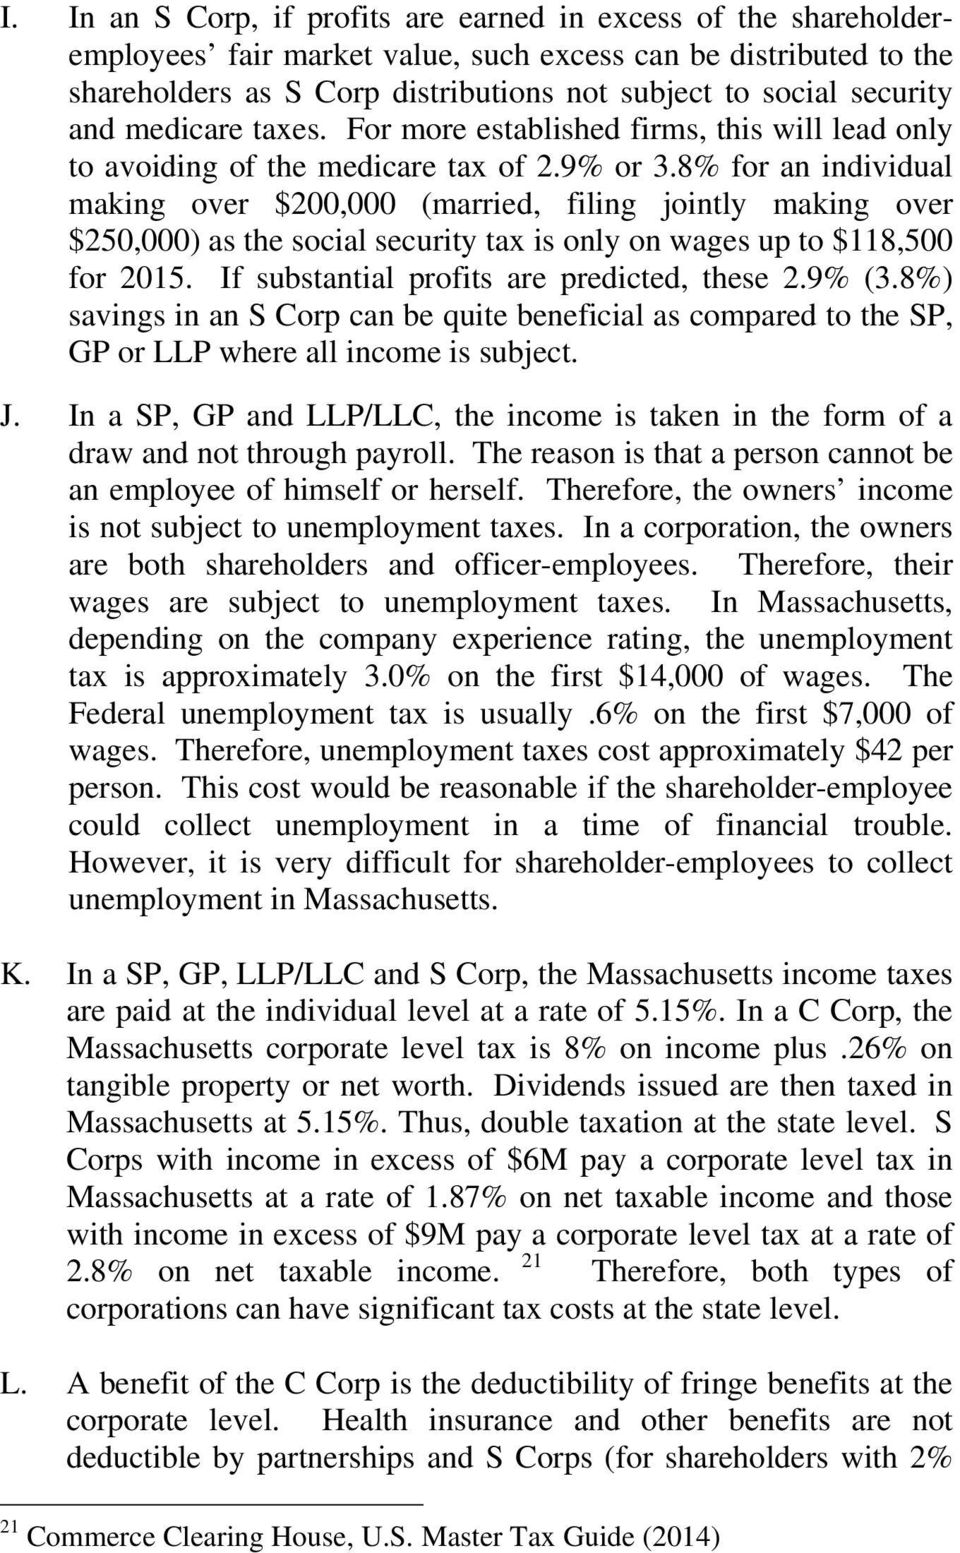 8% for an individual making over $200,000 (married, filing jointly making over $250,000) as the social security tax is only on wages up to $118,500 for 2015.